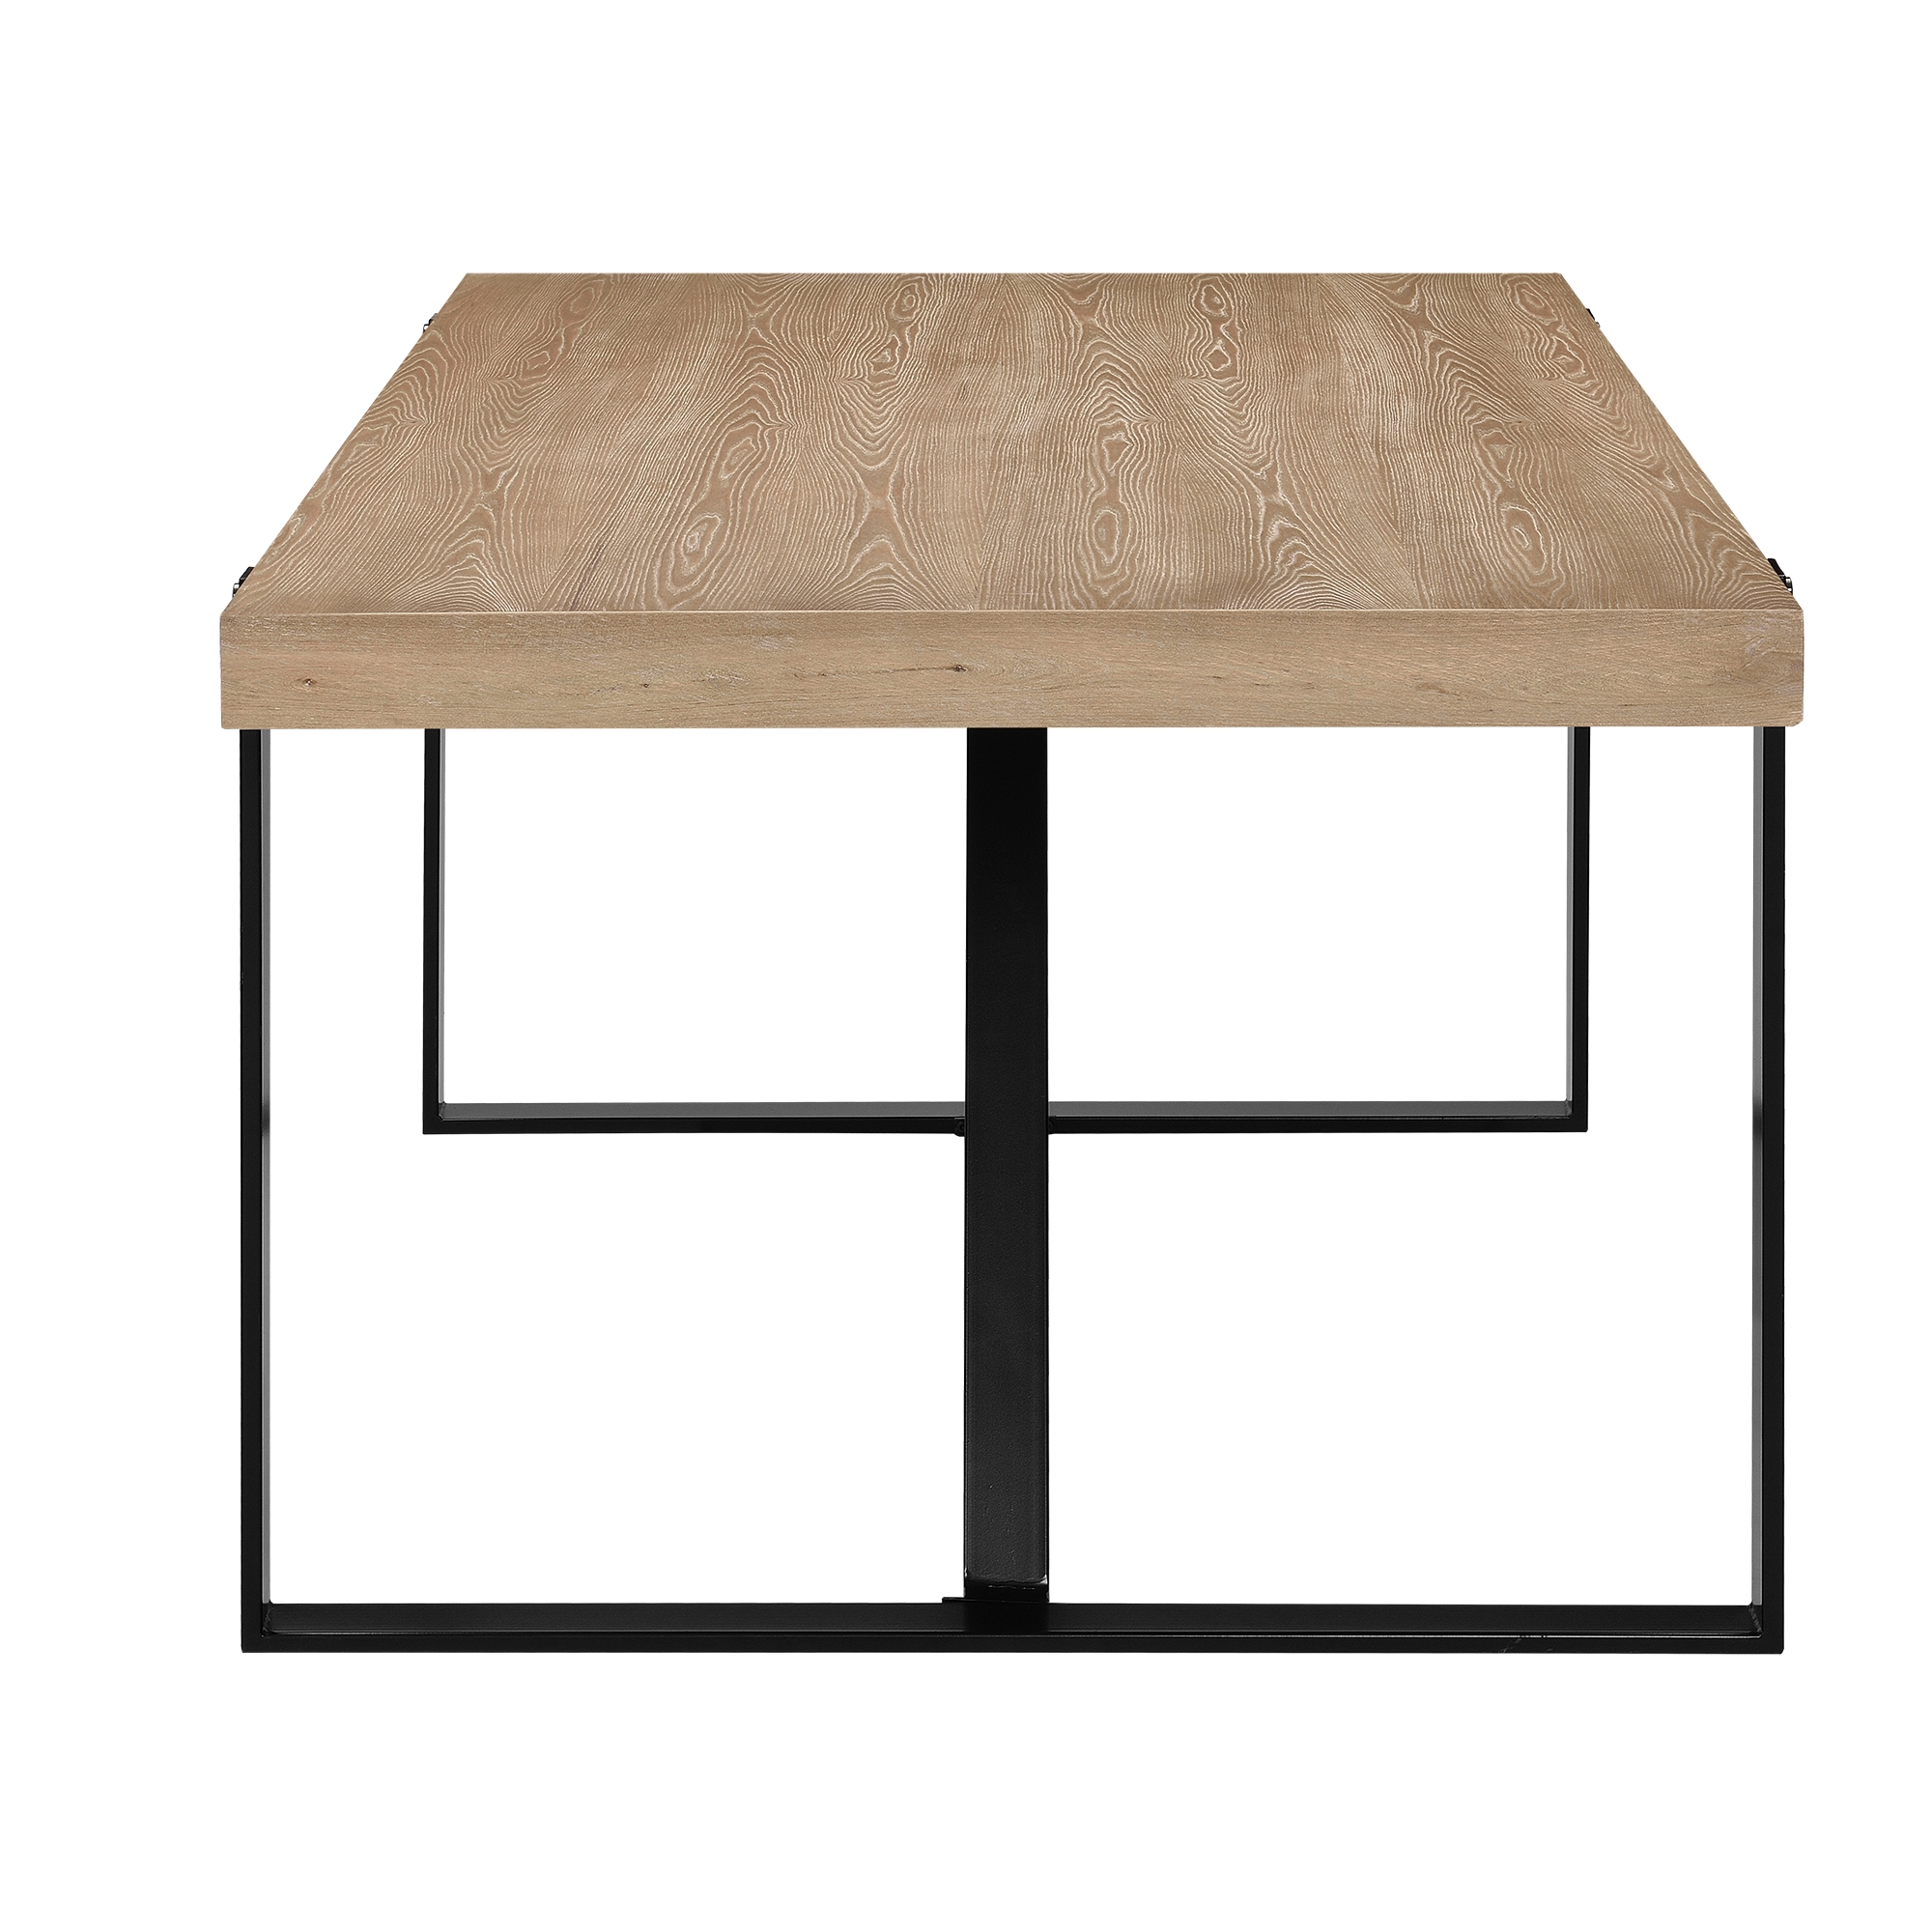 .casa] Modern Dining Table Room Kitchen Retro Round Square Oak EBay. Full resolution‎  photo, nominally Width 2000 Height 2000 pixels, photo with #80654B.